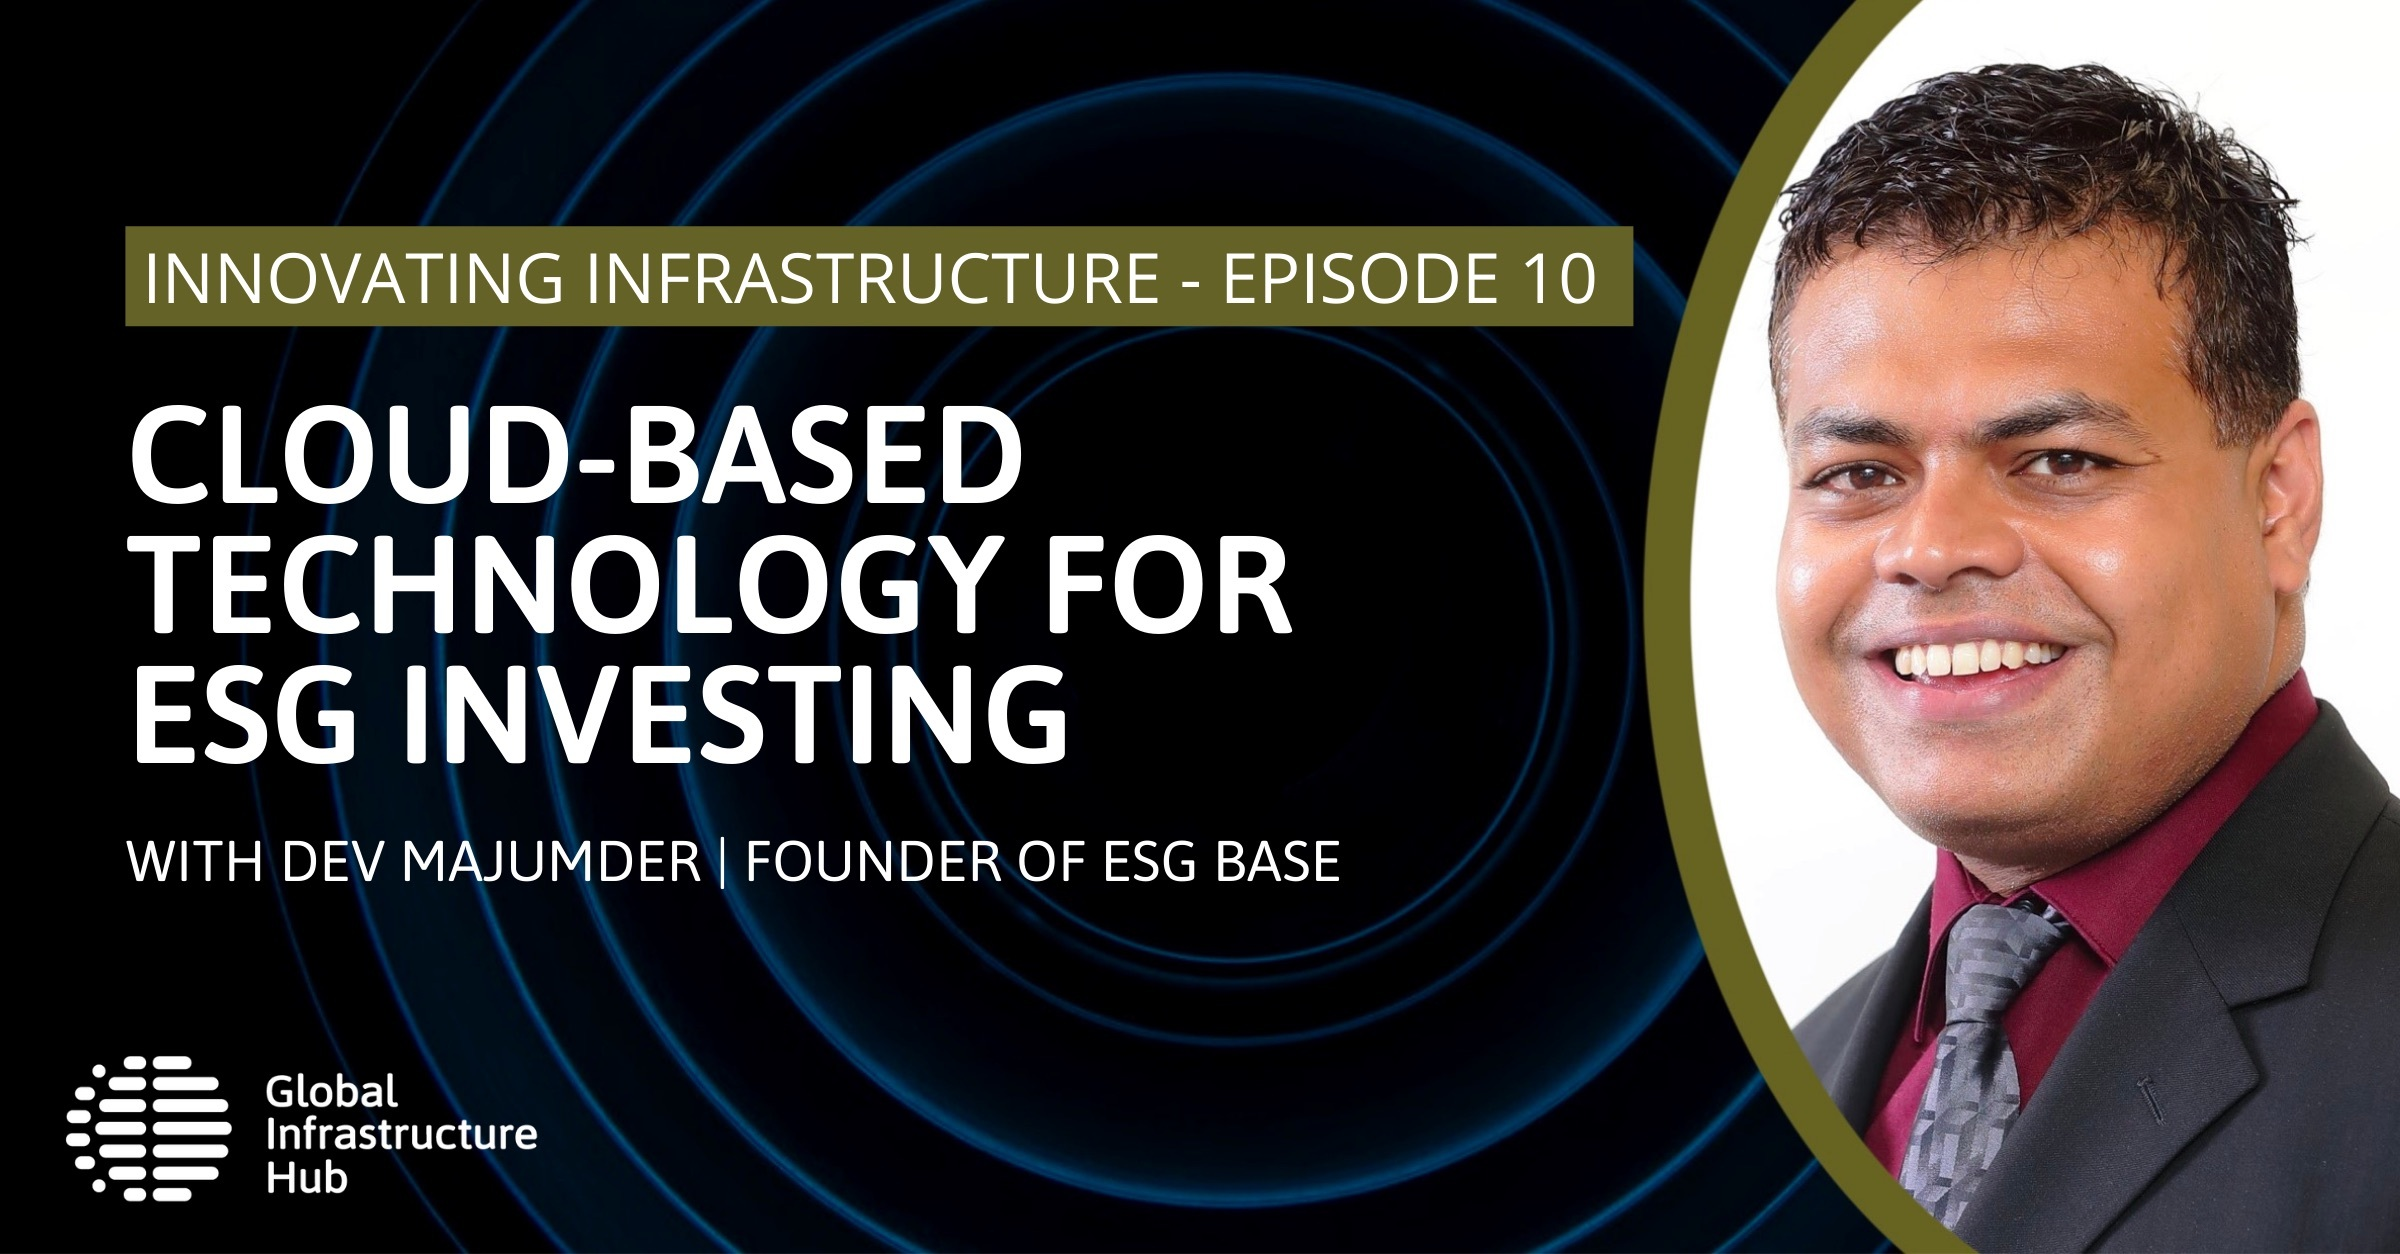 Cloud-based technology for esg investing